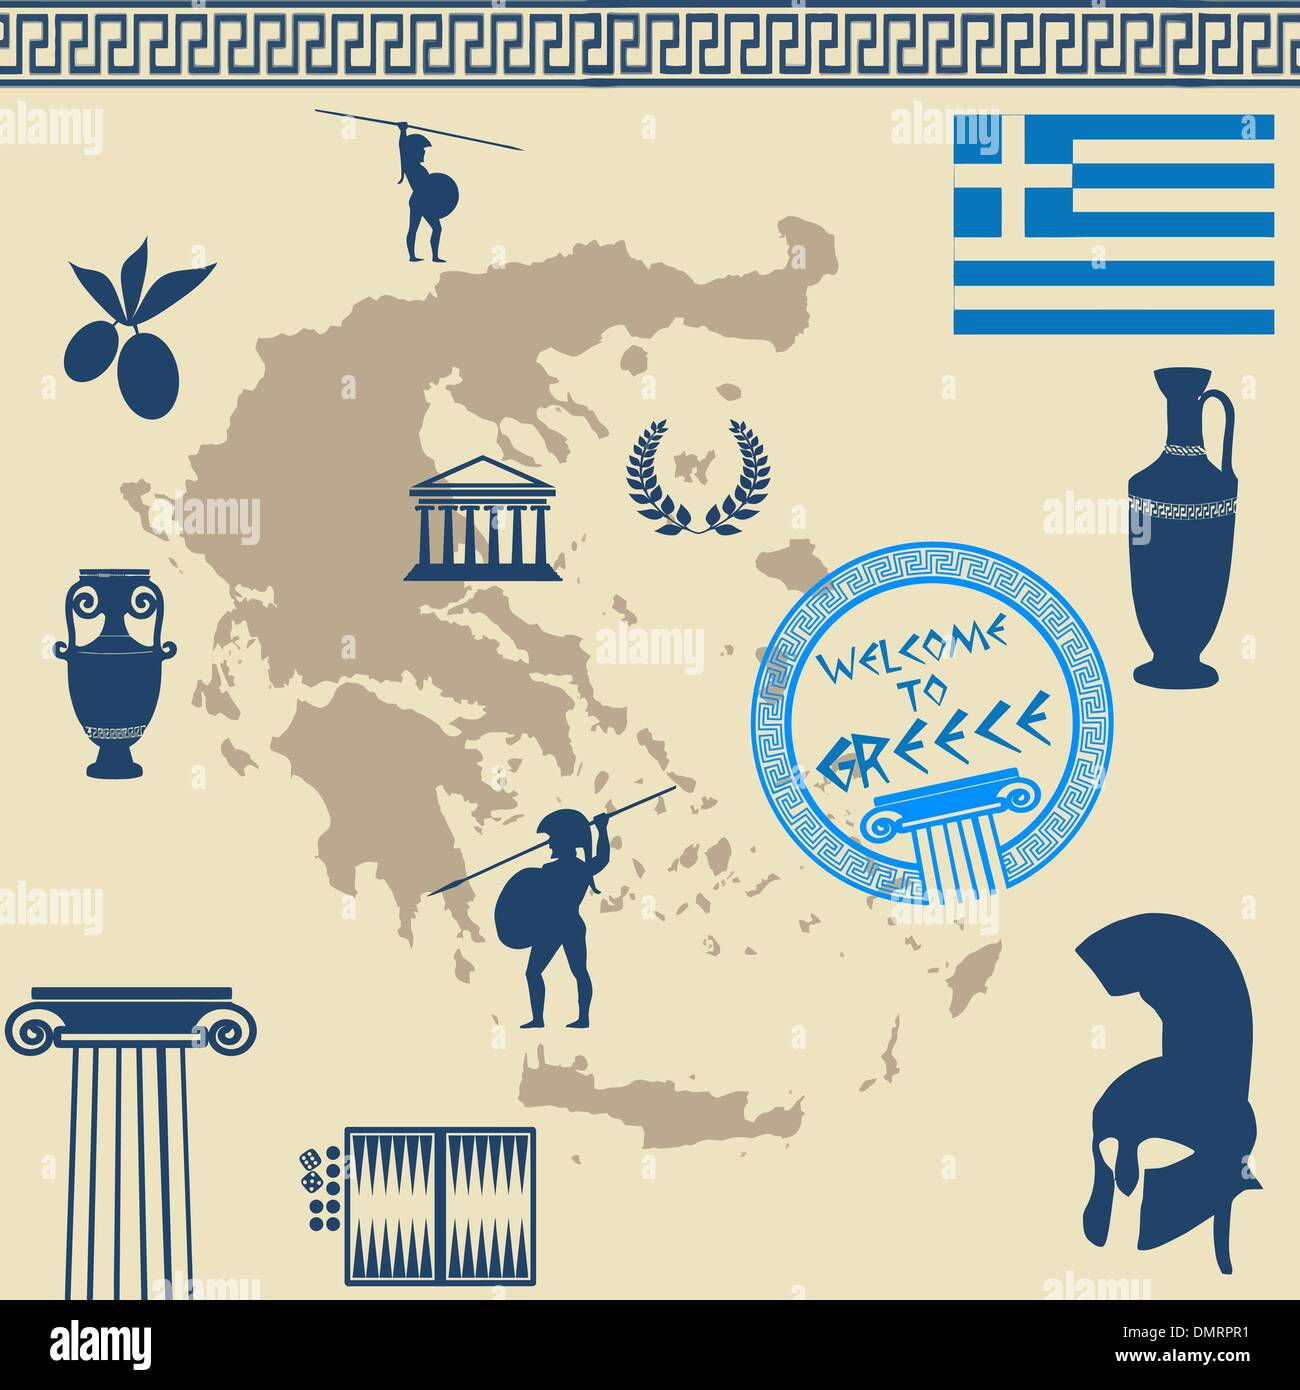 Greek symbols on the greece map stock vector art illustration greek symbols on the greece map buycottarizona